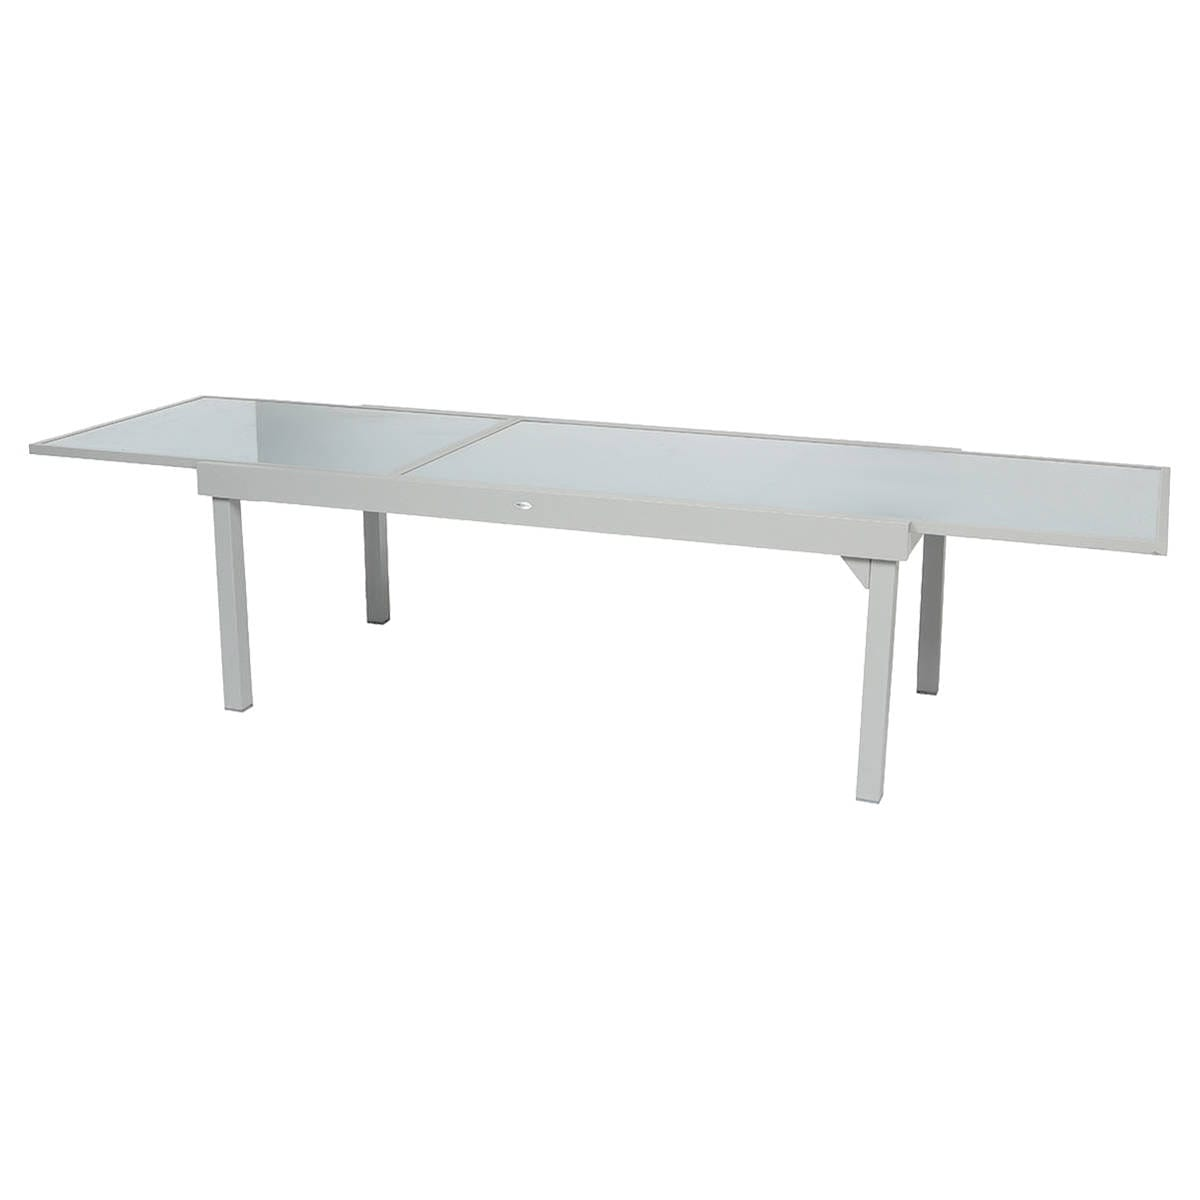 Table de jardin extensible piazza gris silver mat for Table exterieur 12 places